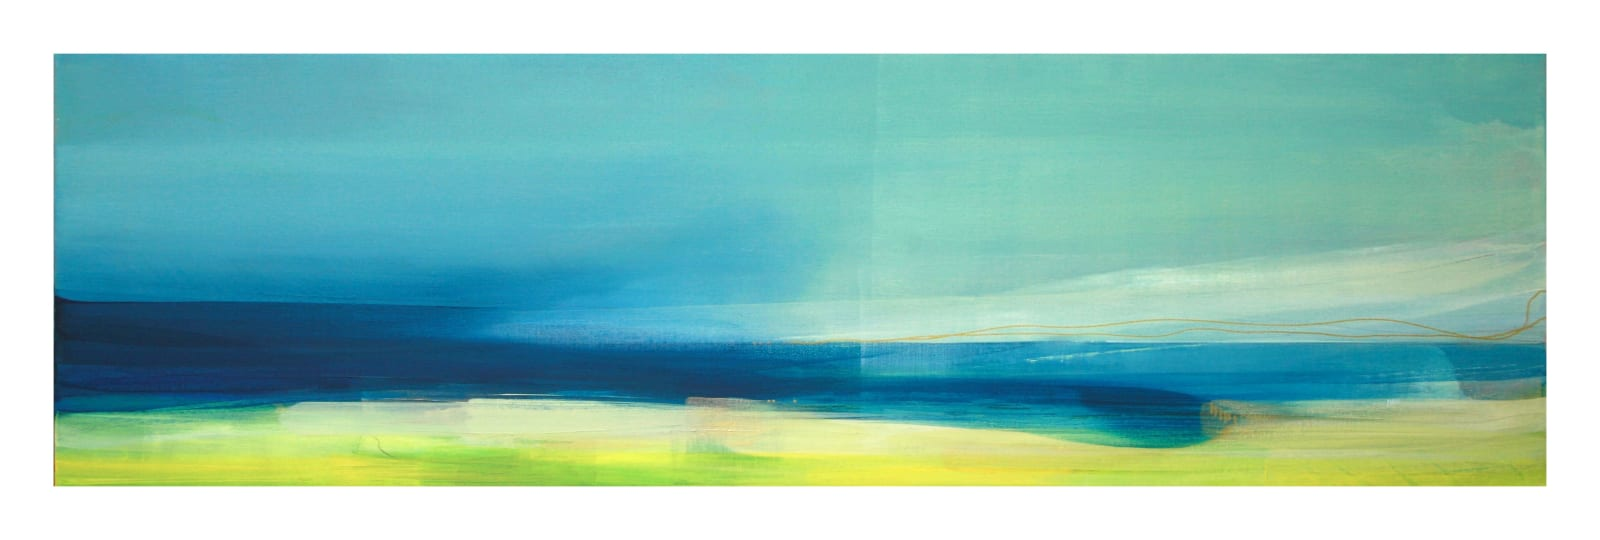 Victoria Wylie, Whispering Expanse, Stonehaven